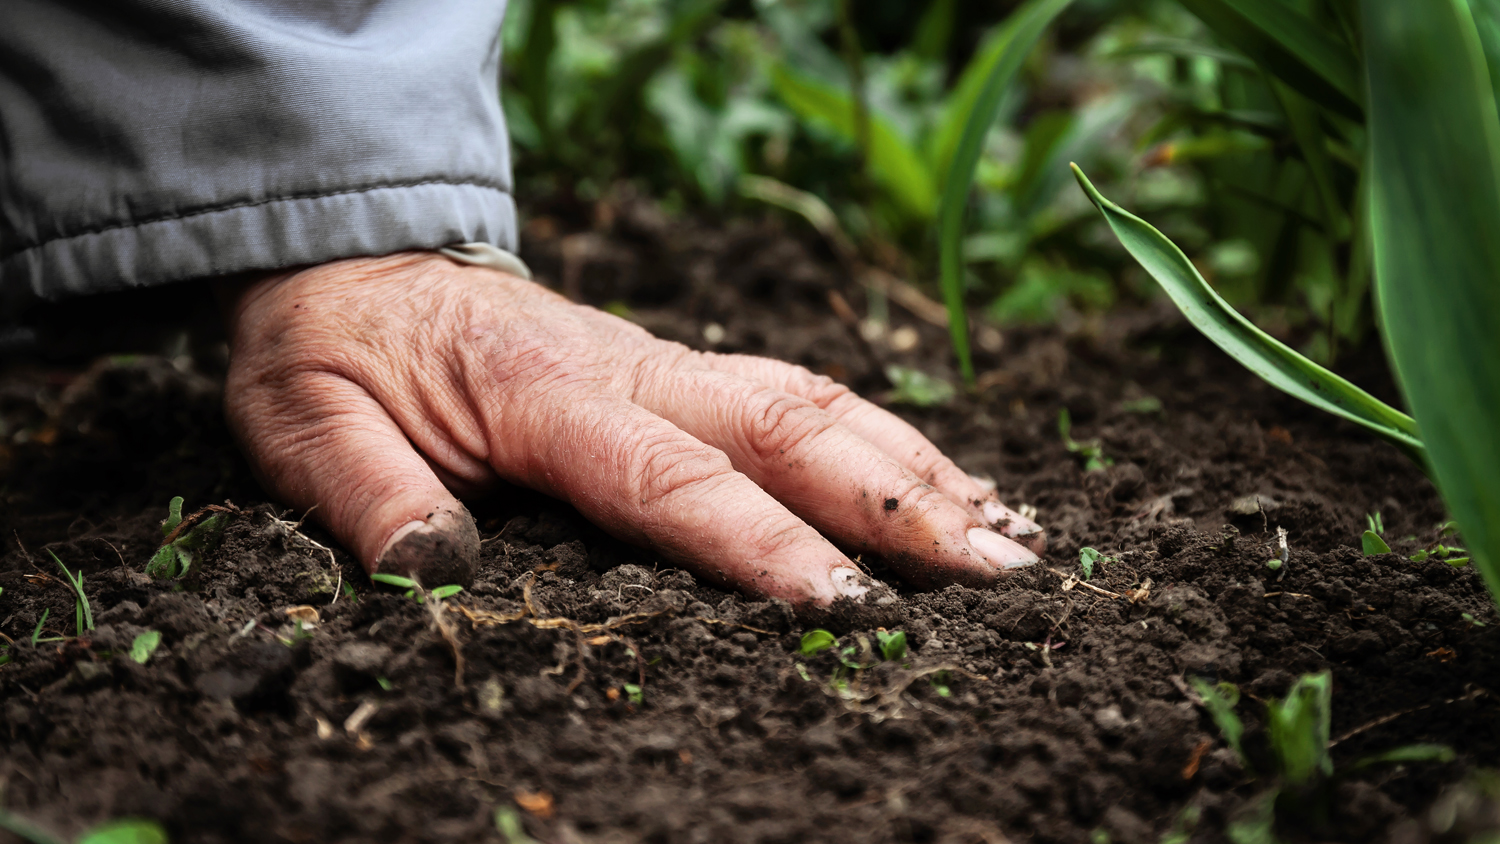 Close up image of a hand on the soil in a garden.